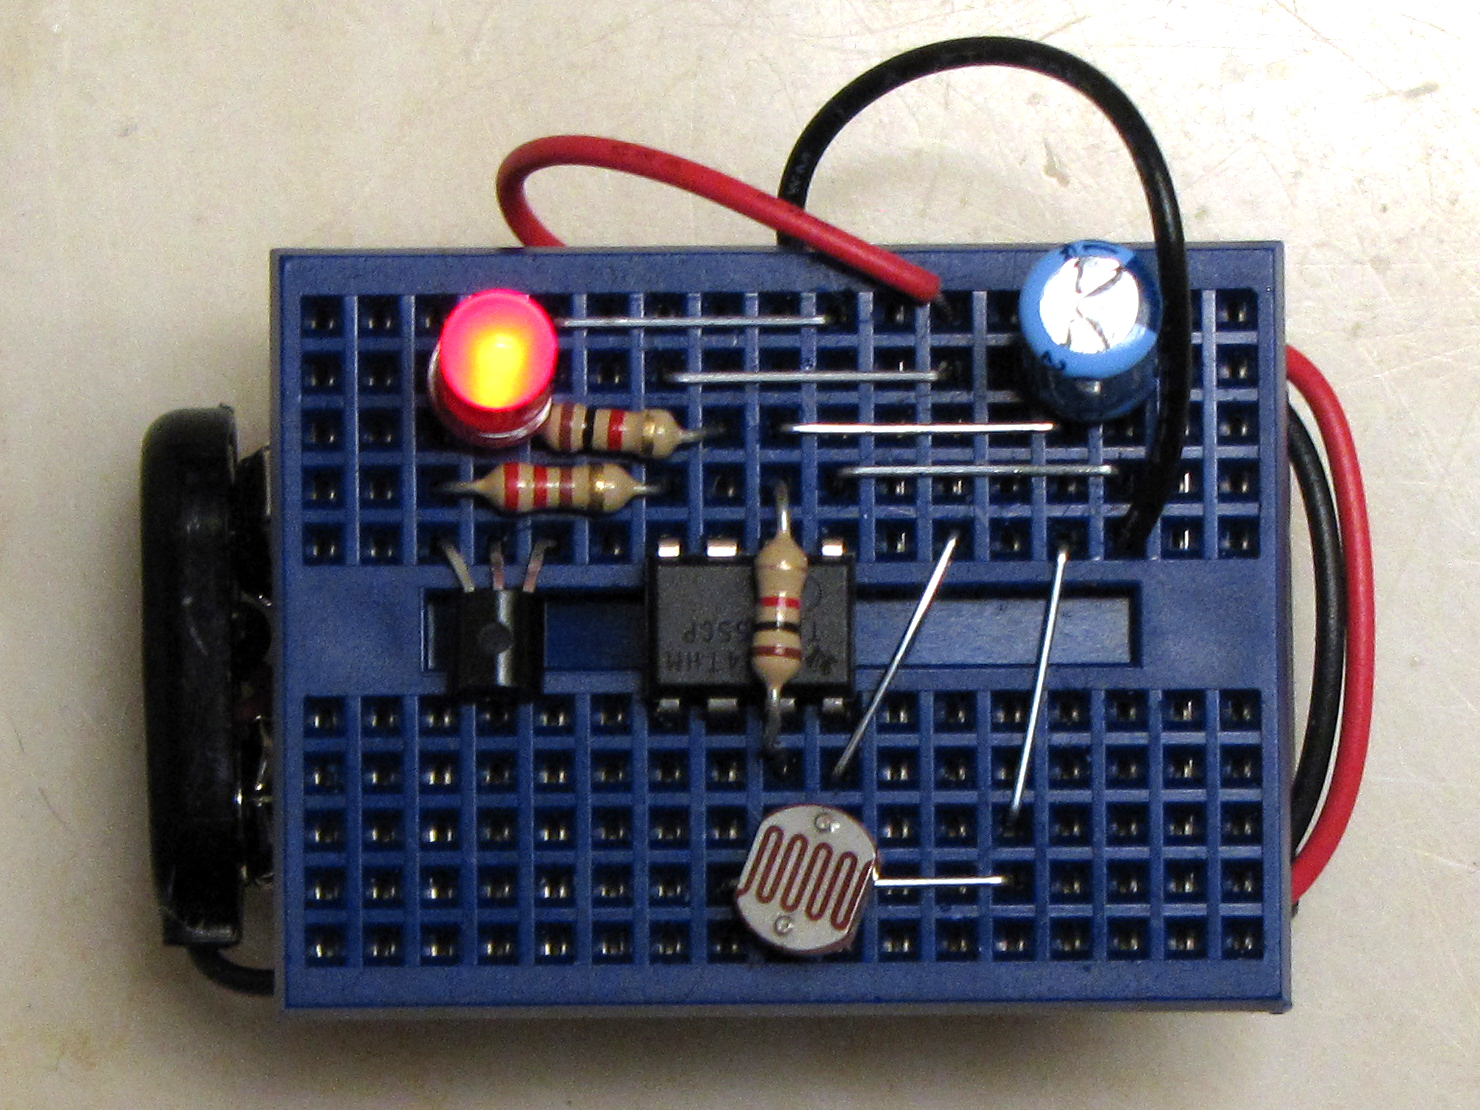 How-To: Use Staples as Breadboard Jumpers